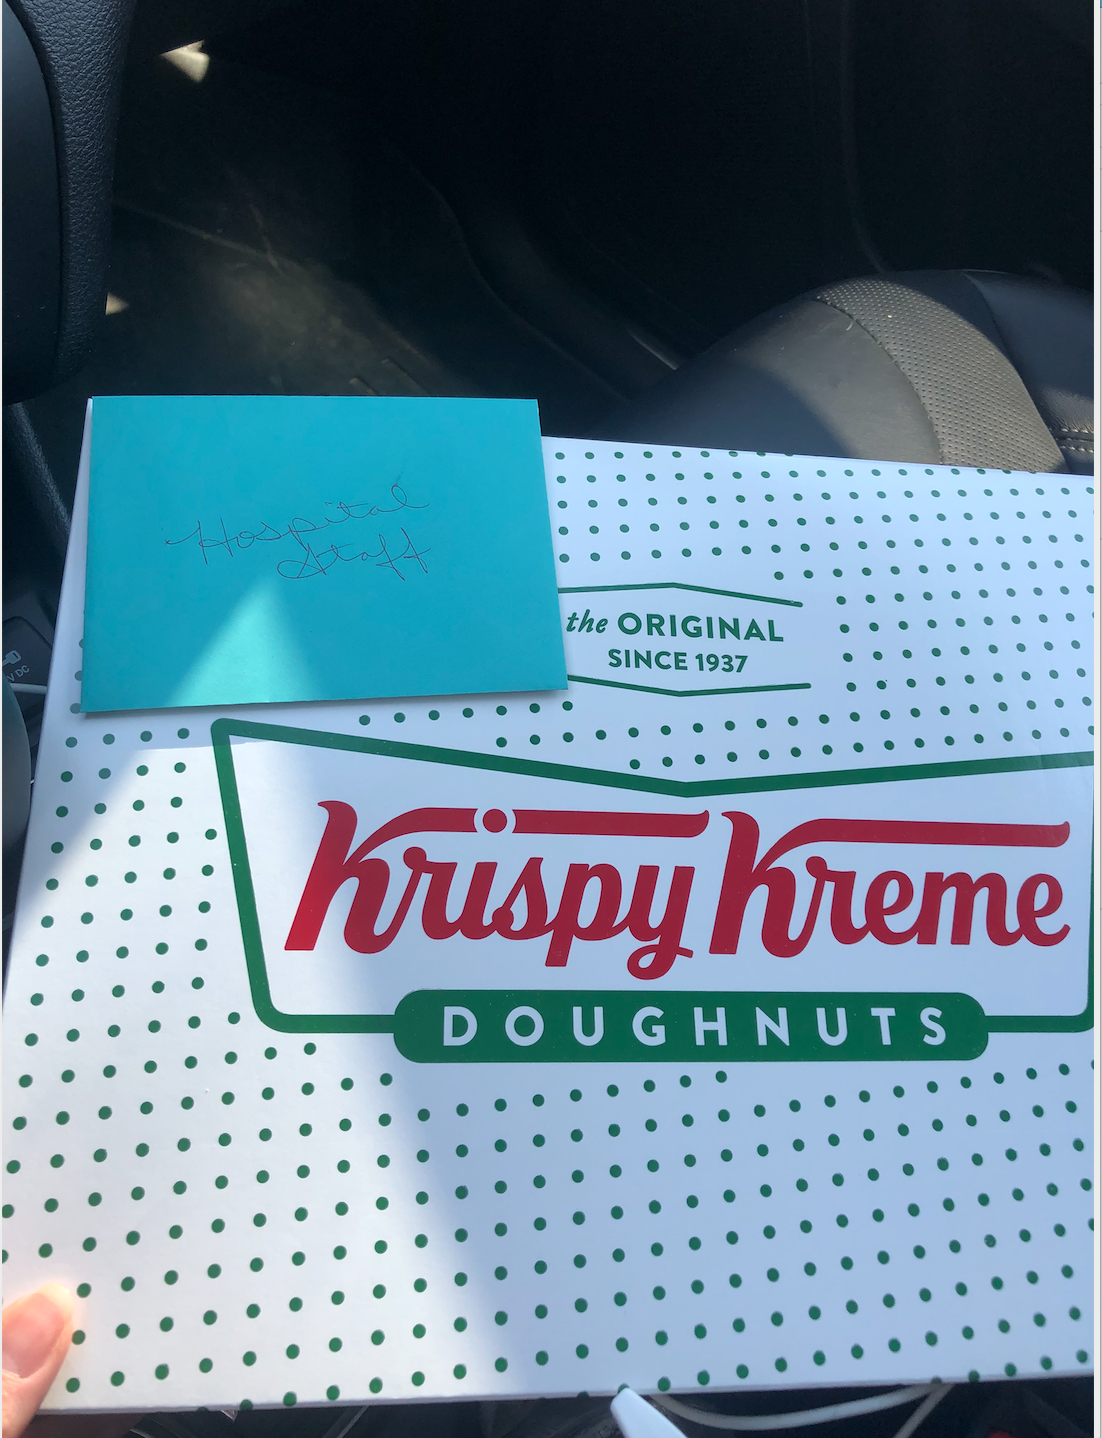 Stephanie Mendrala's donation of donuts to medical workers